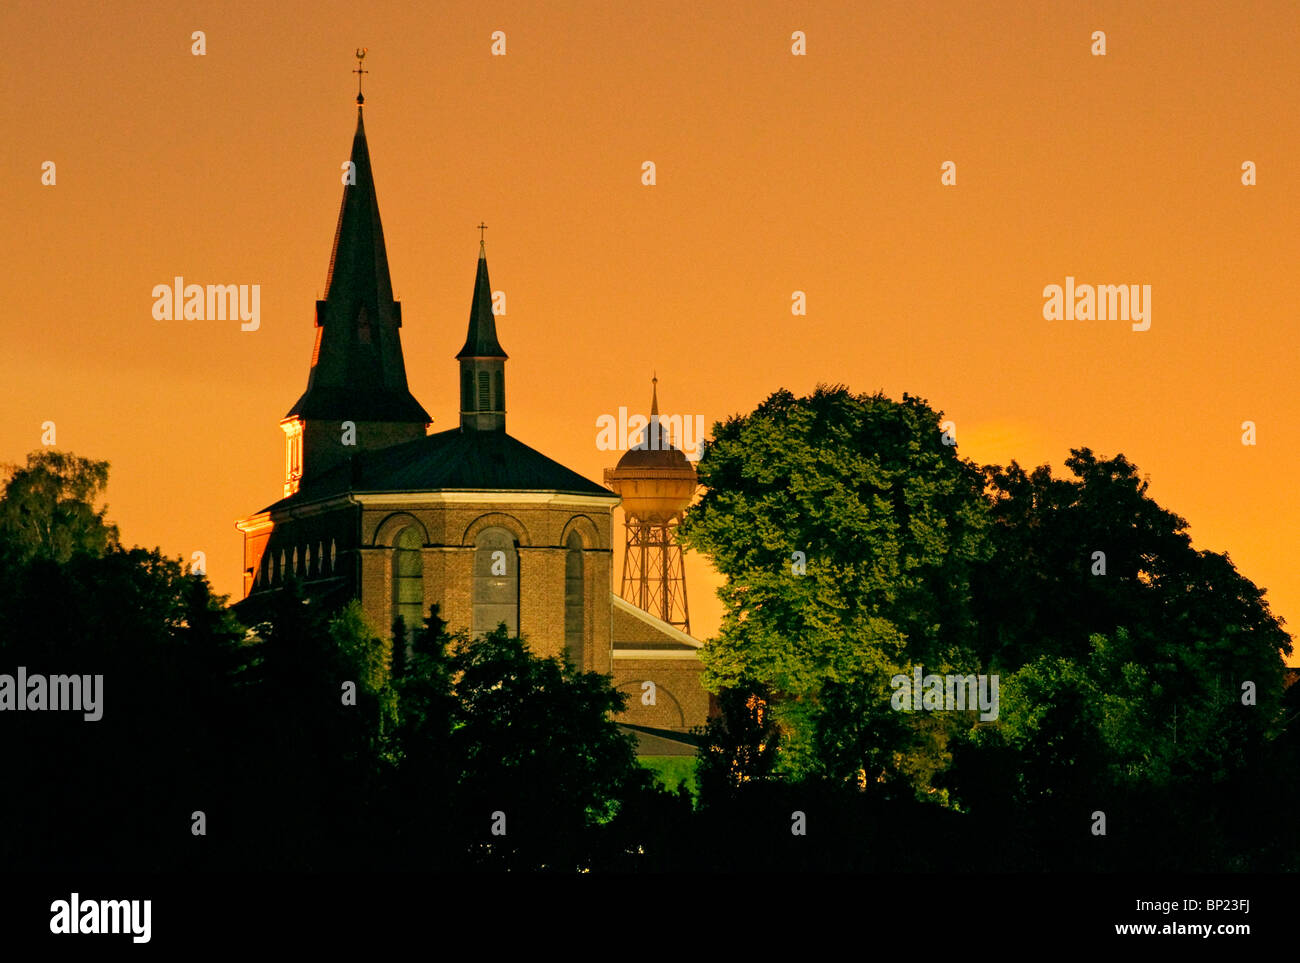 Church__water_tower_at_night_set_against